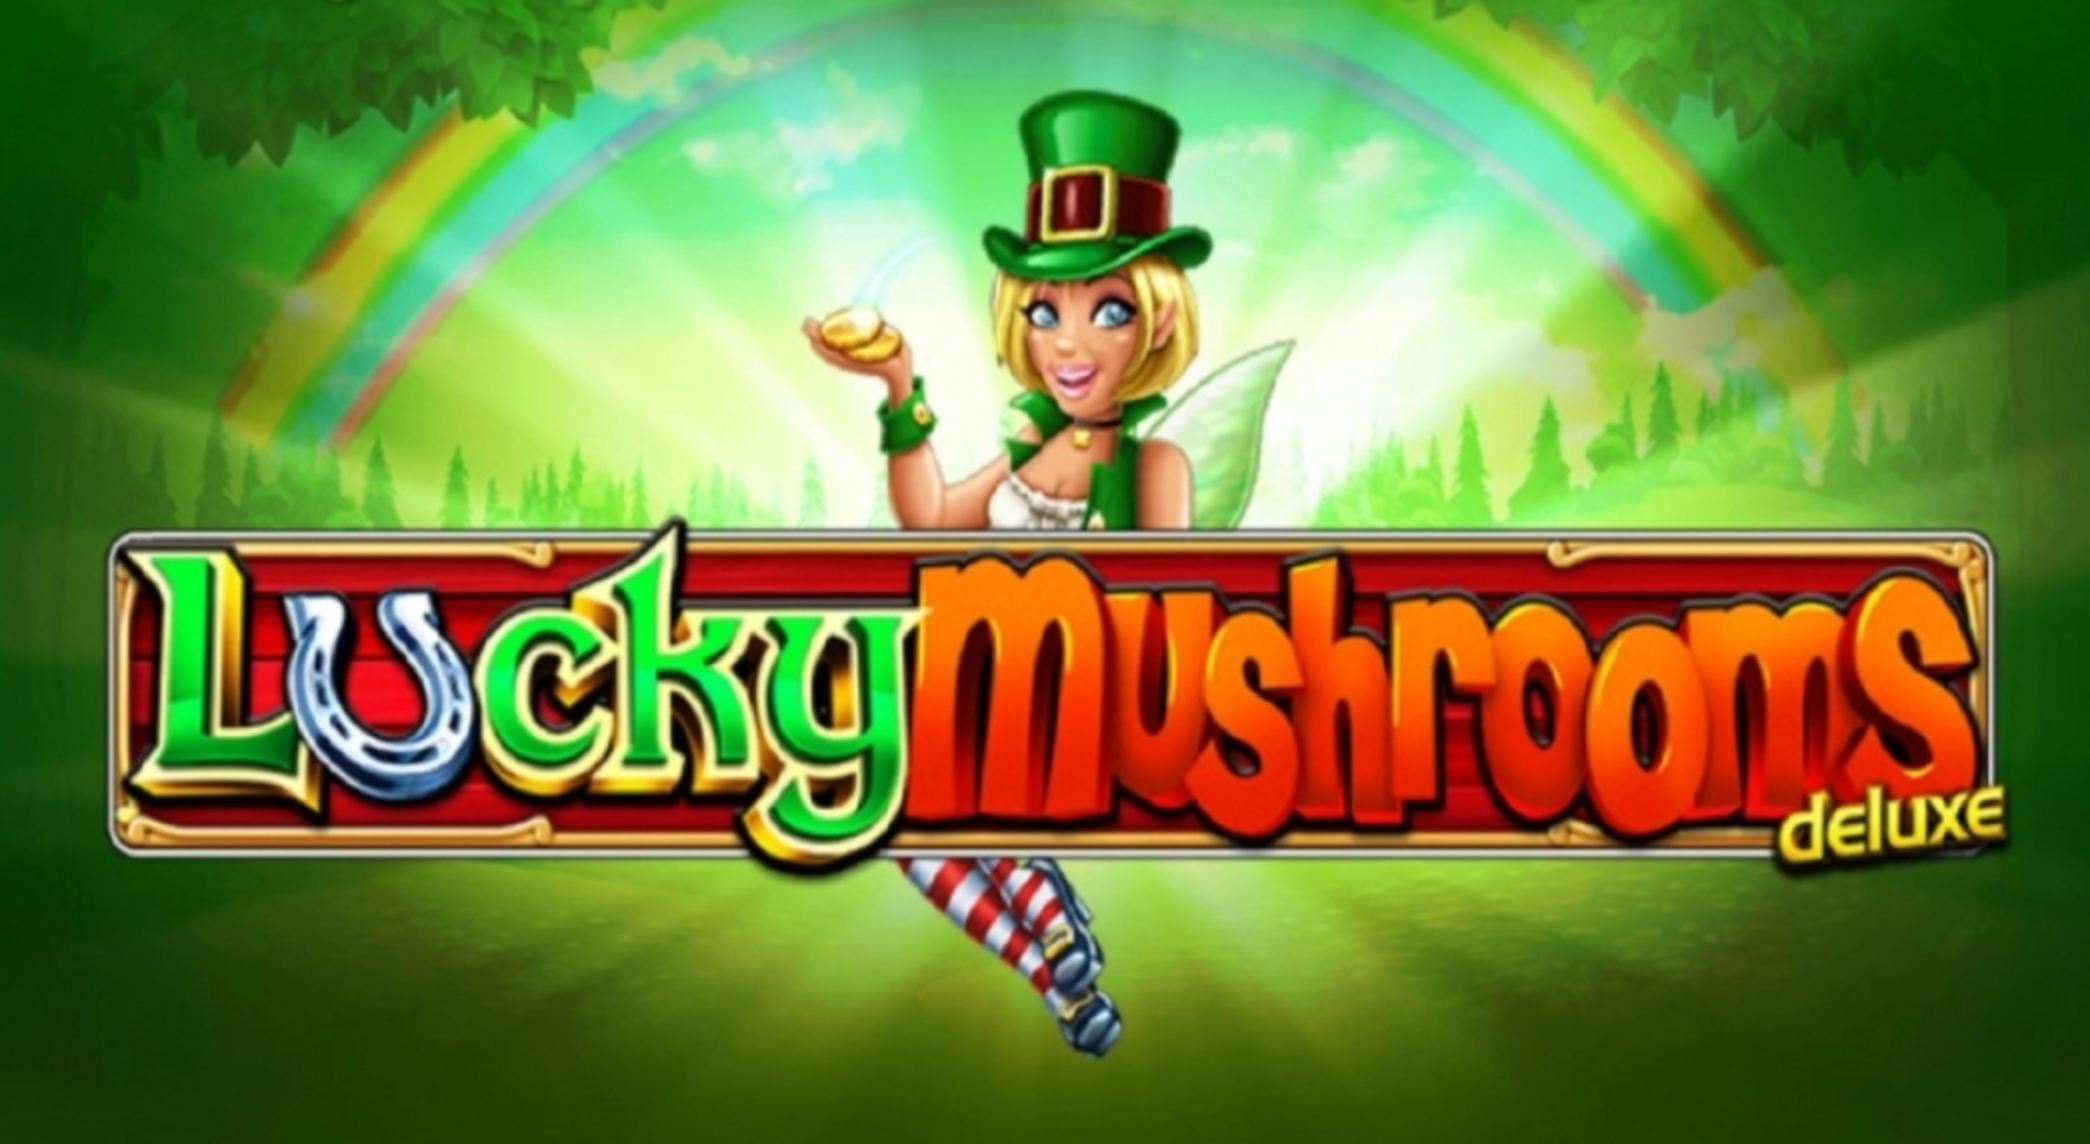 Lucky Mushrooms Deluxe Online Slot Demo Game by Stakelogic